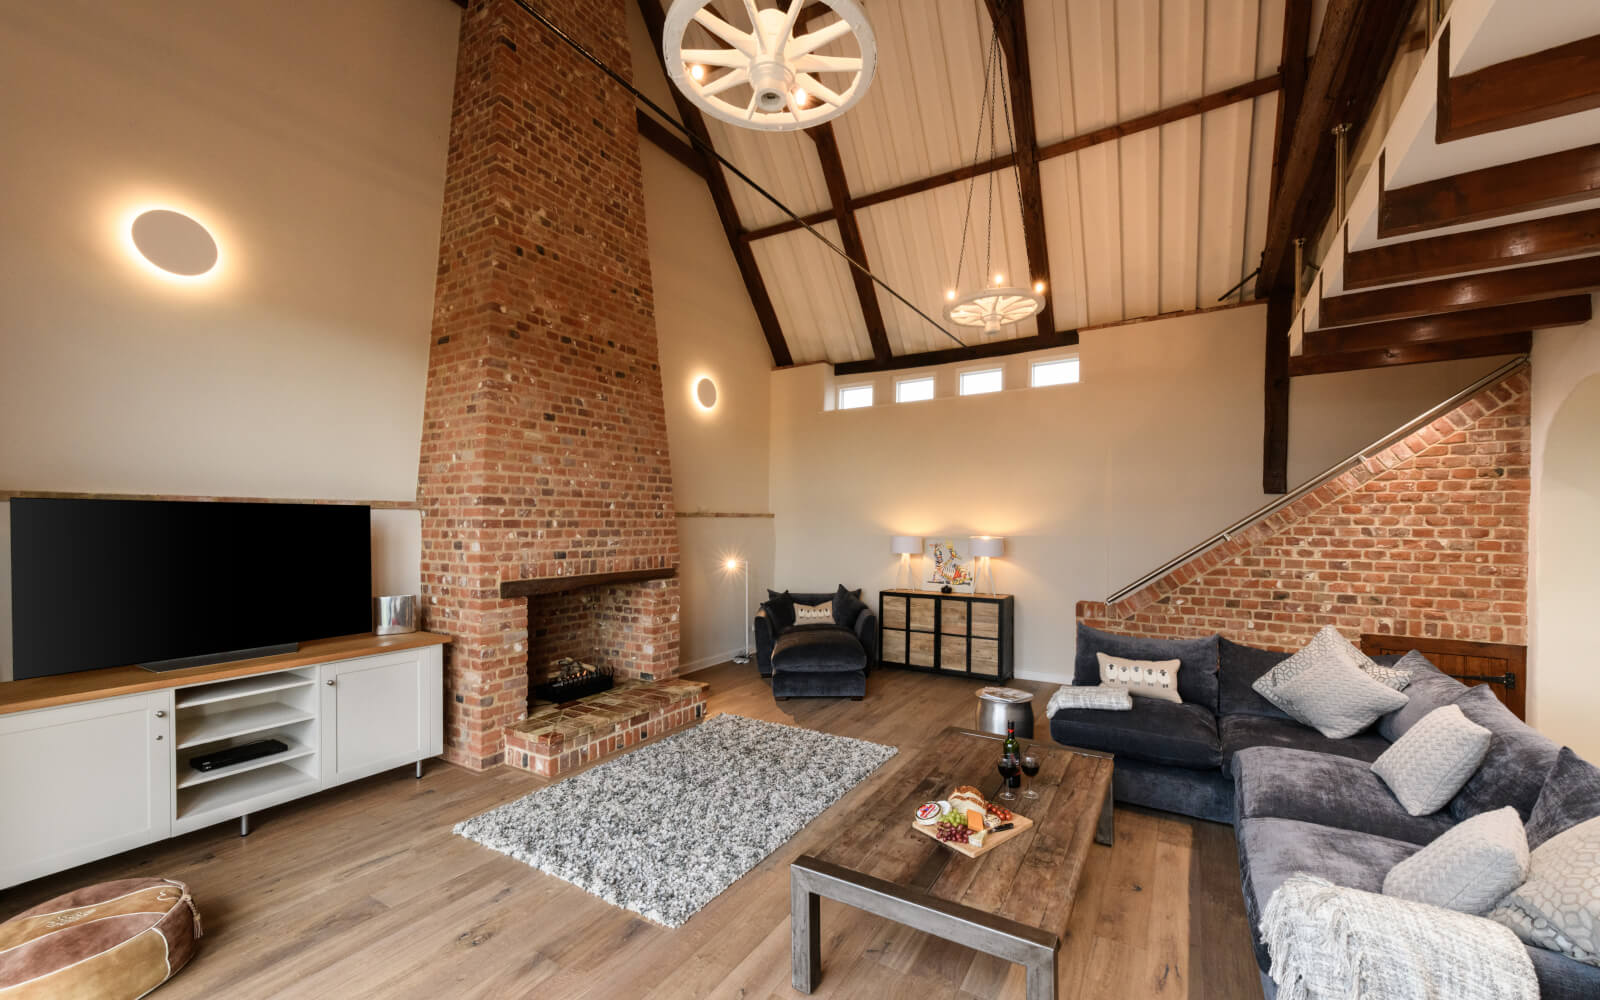 Luxury Cottages In Northern Ireland To Rent - Save up to 60%